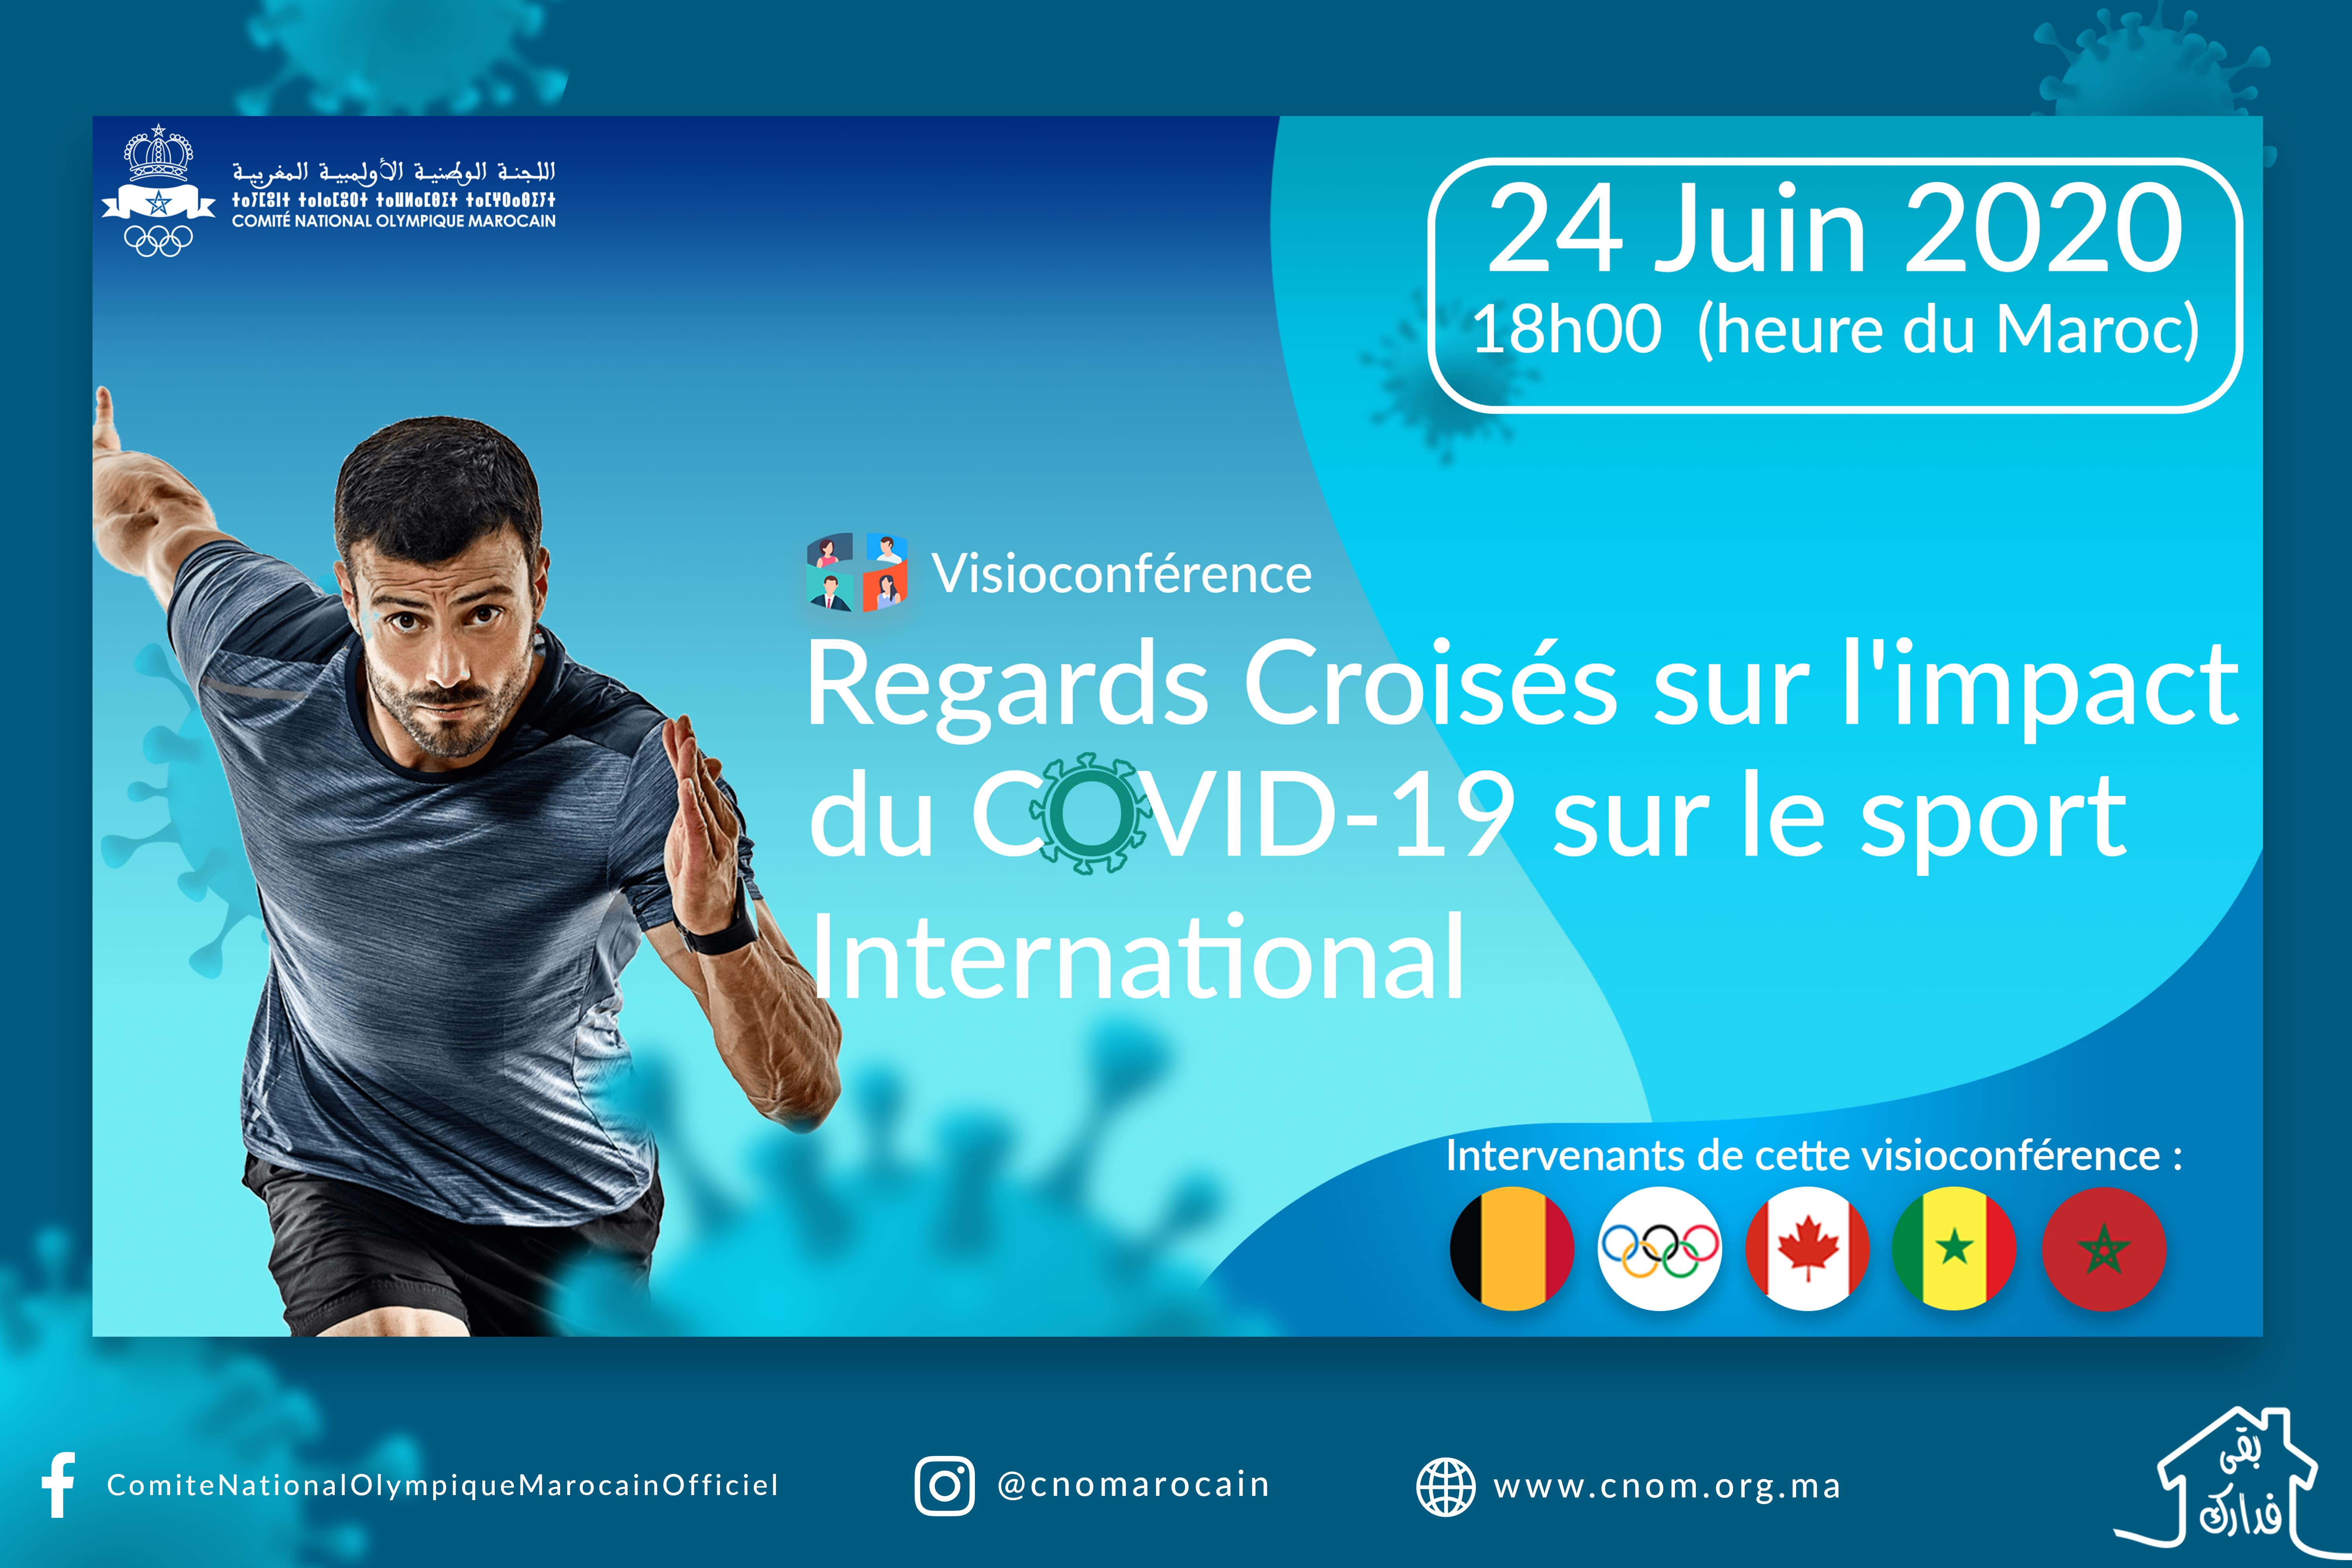 Visioconférence : Regards Croisés sur l'impact du COVID-19 sur le sport international